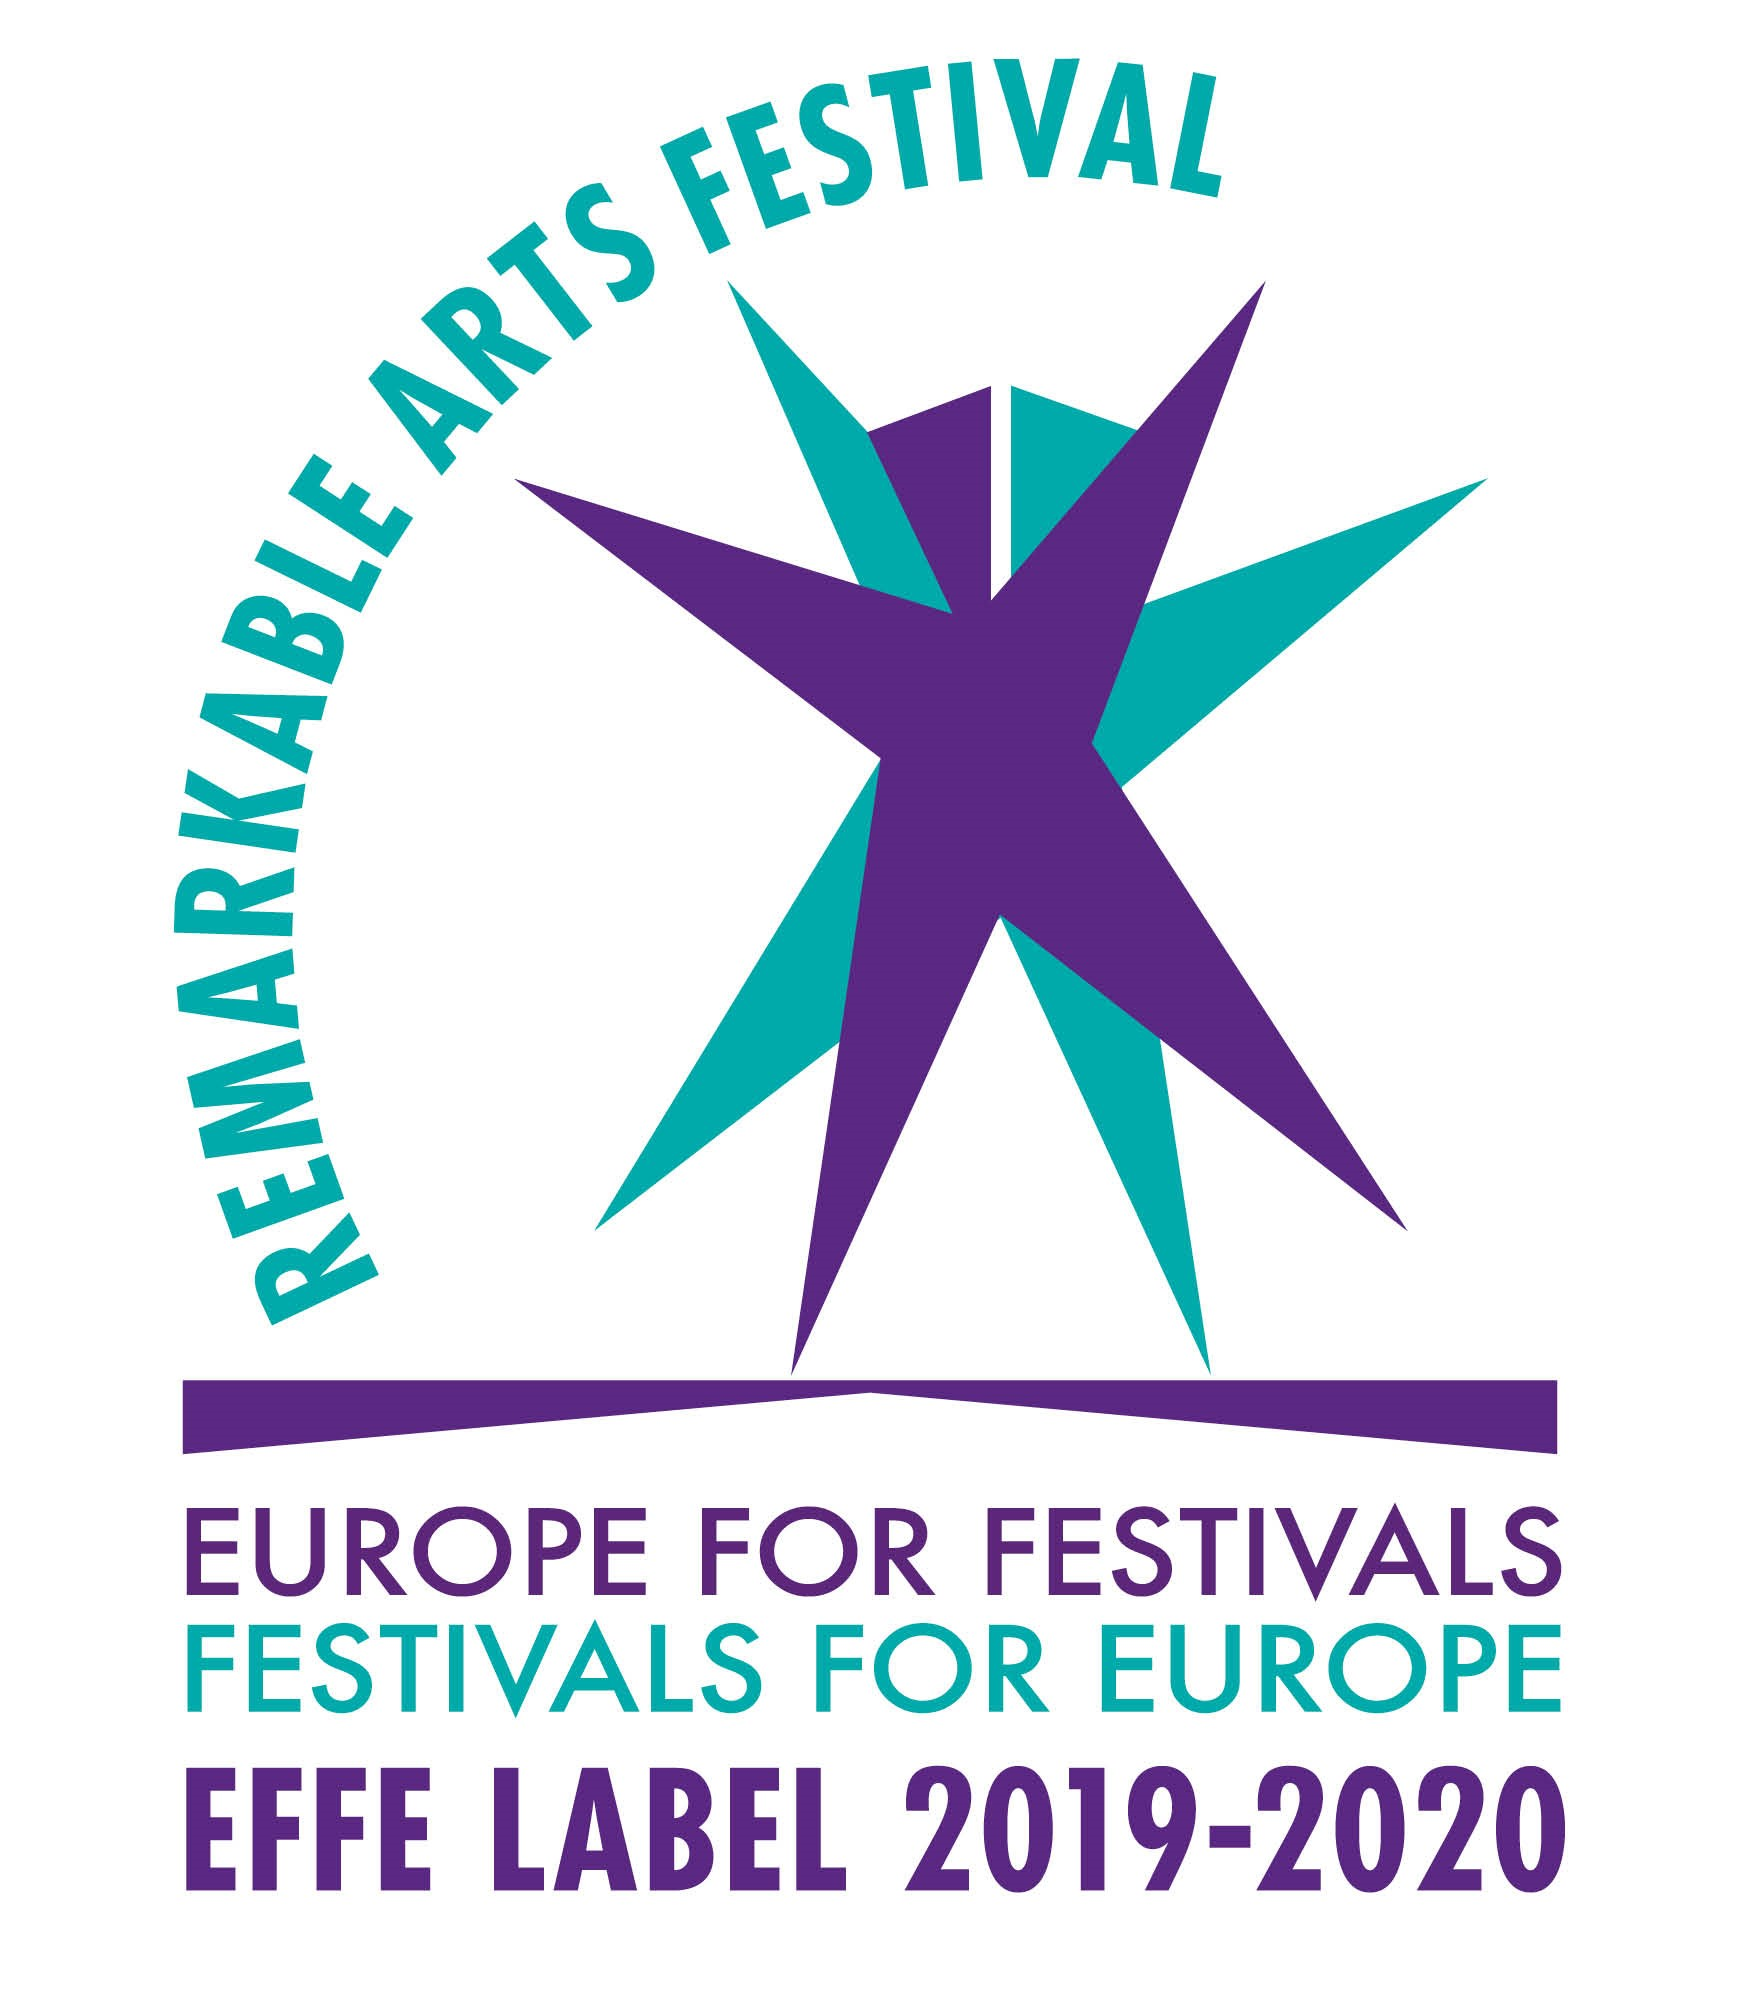 EFFE Label rgb 20192020